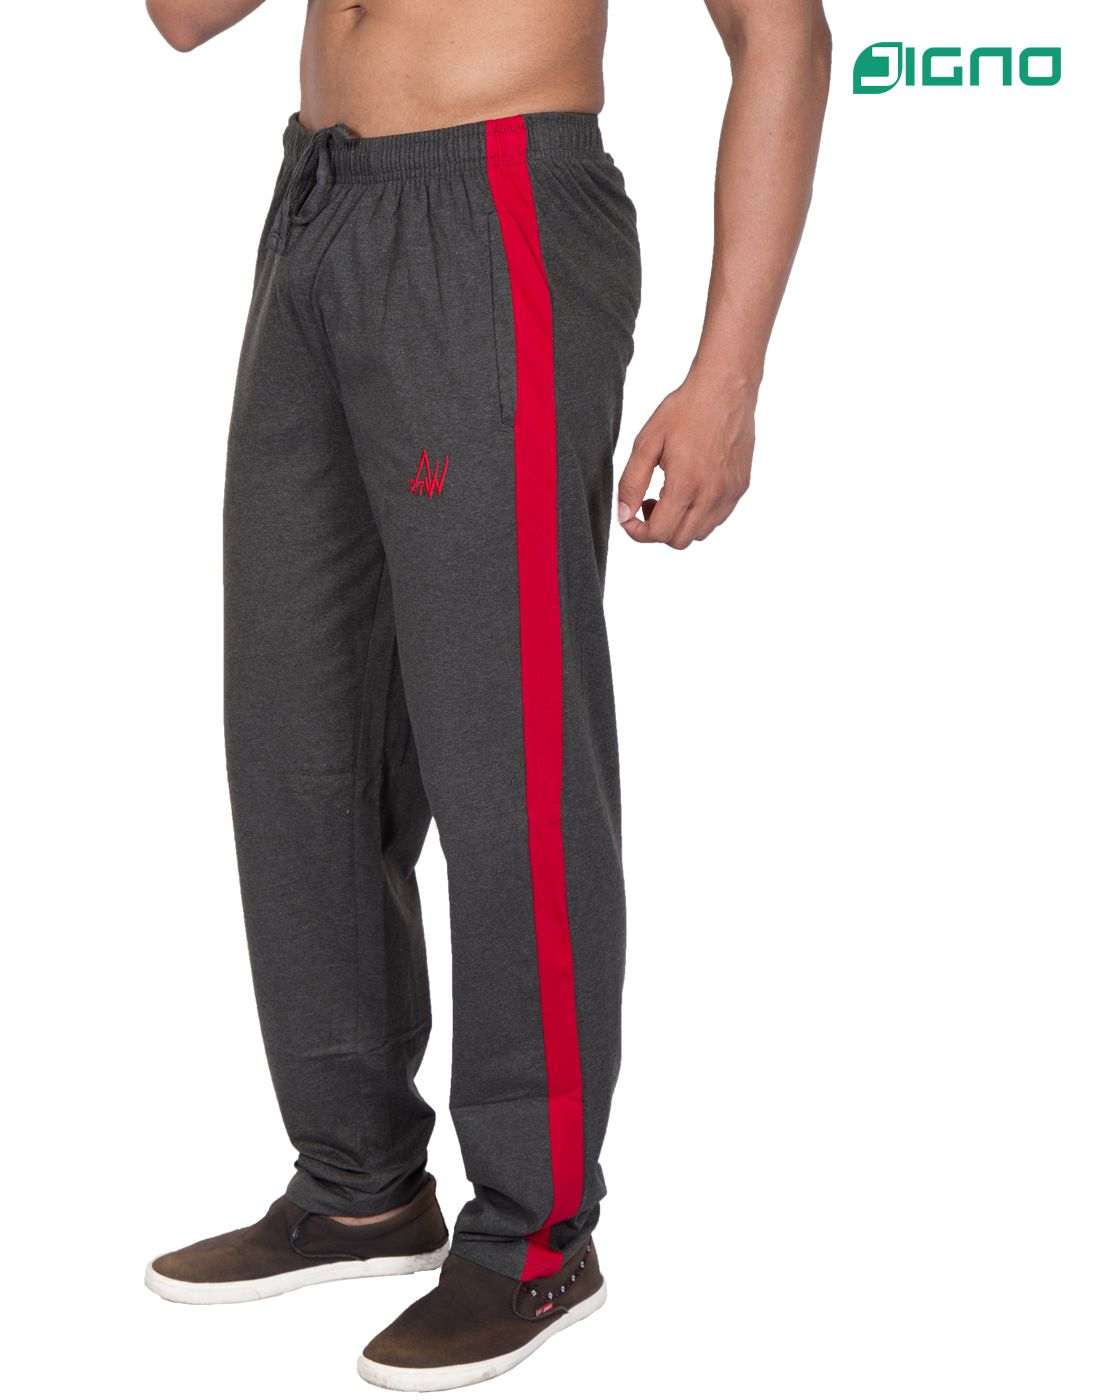 0642c95ea999e Shop for Branded Men's Track Pants Online at Low Prices In India. Be The  Fitness Lover With These Trendy Track Pants With Style and Fashion making  you a ...